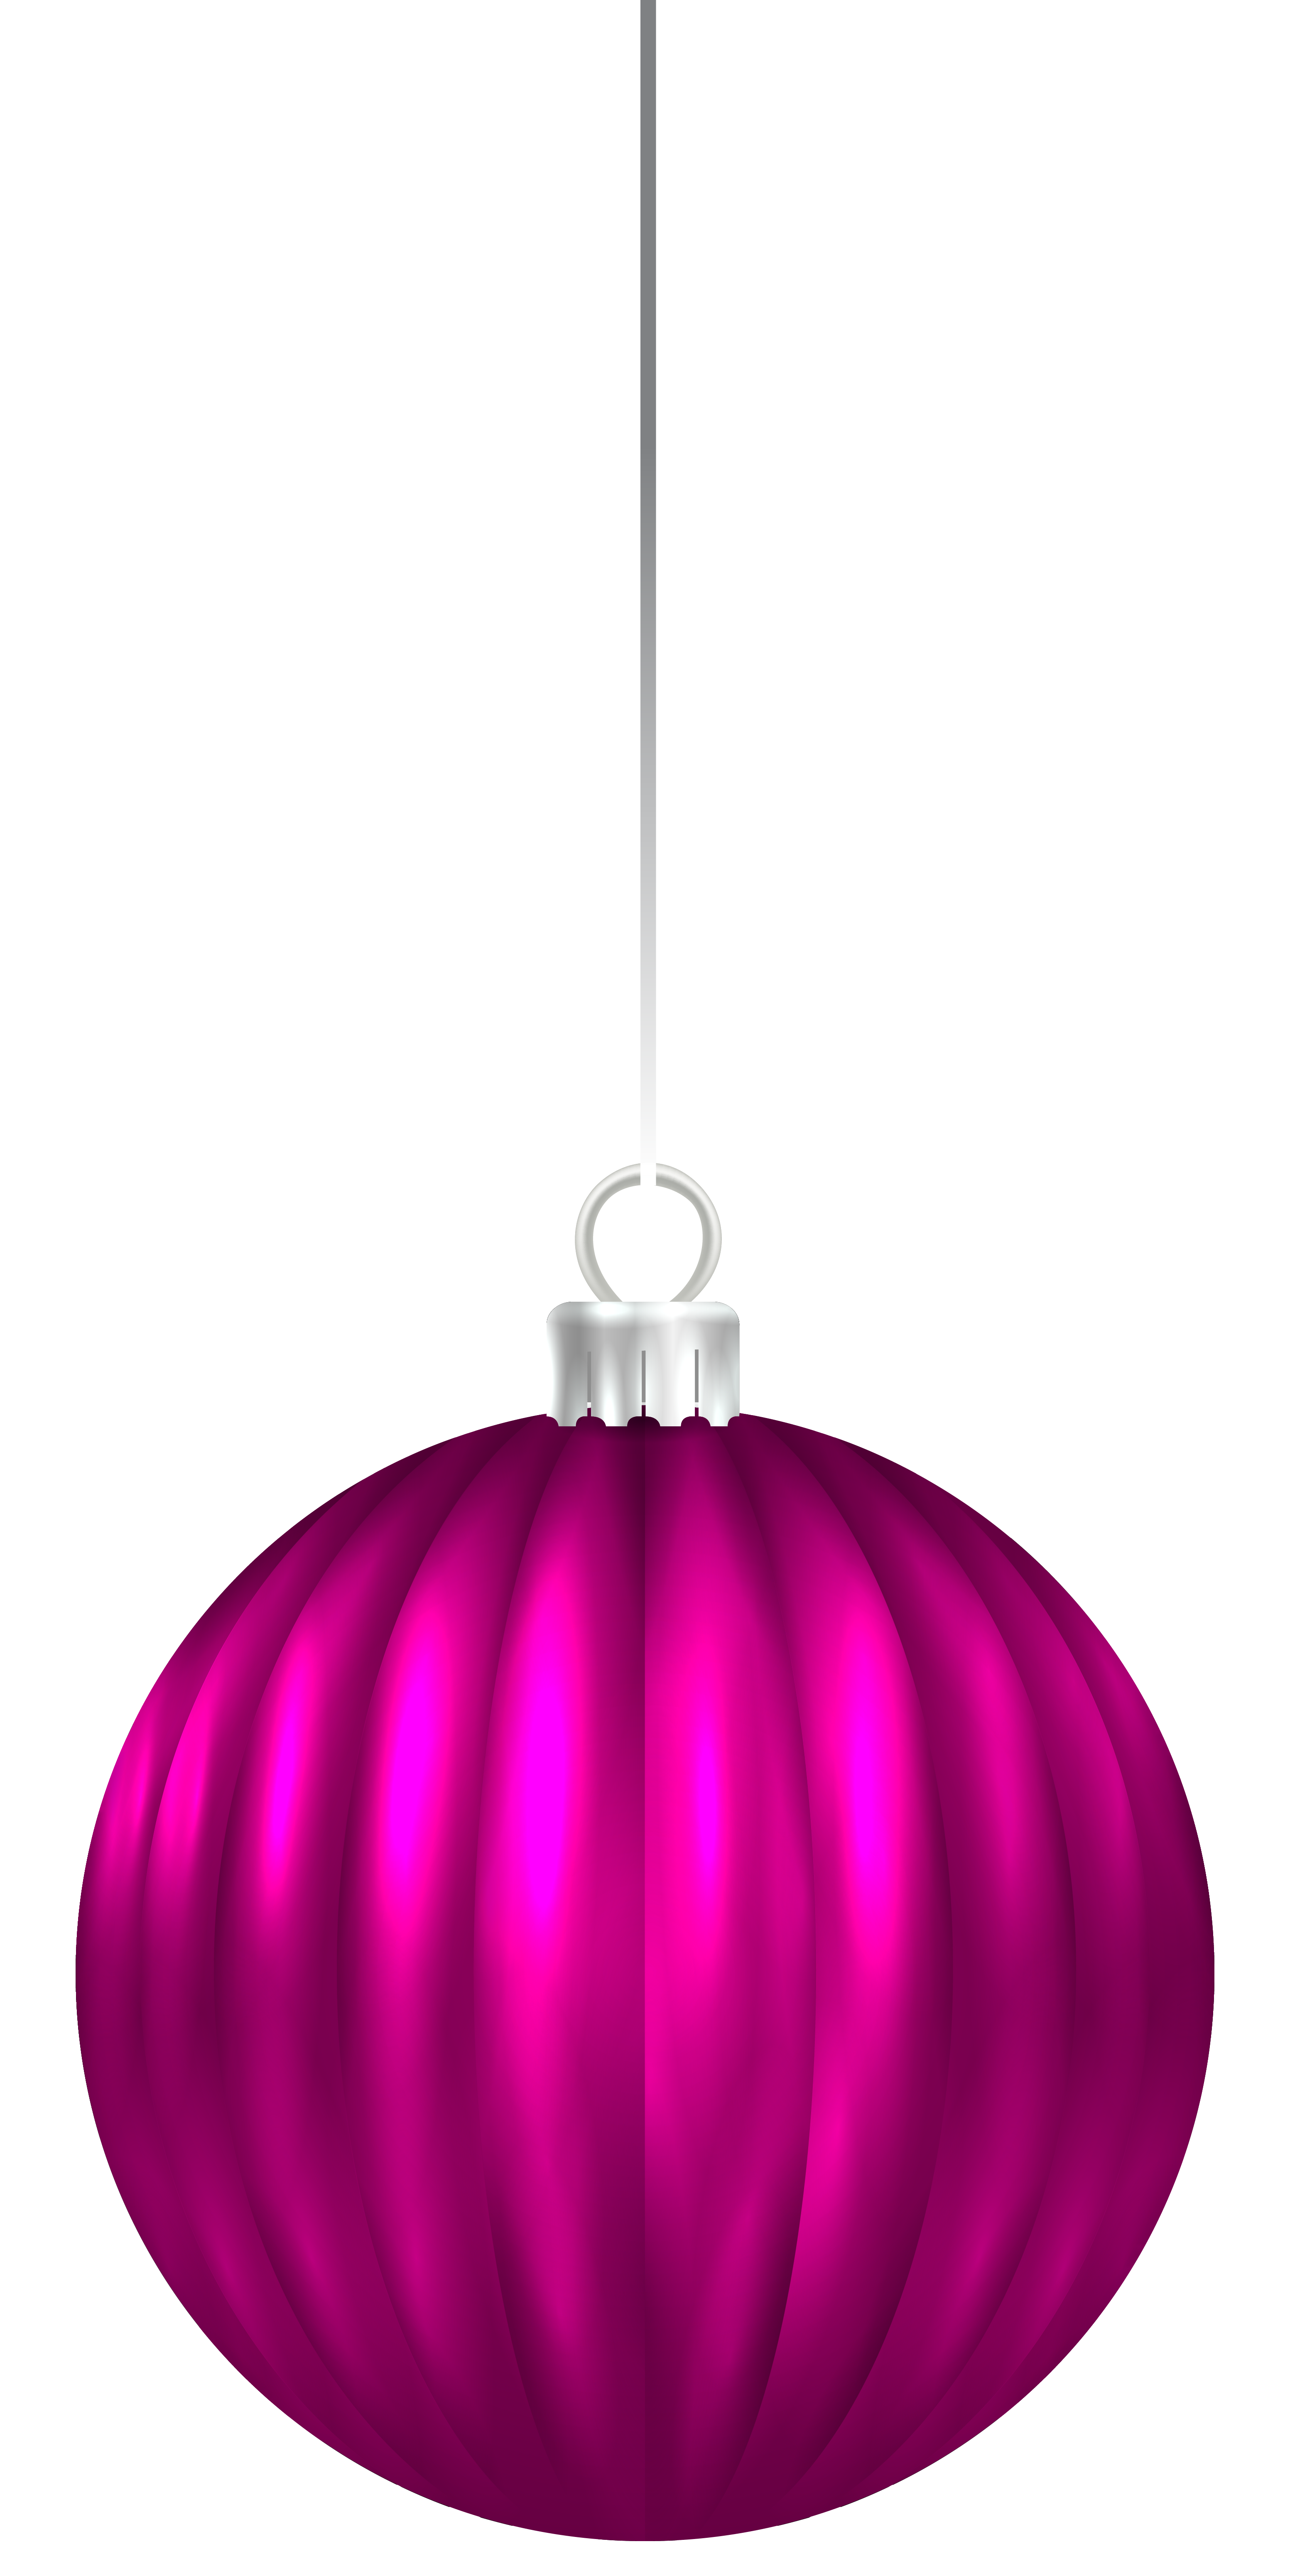 Pink christmas tree clipart png free stock Pink Ornament Clipart png free stock